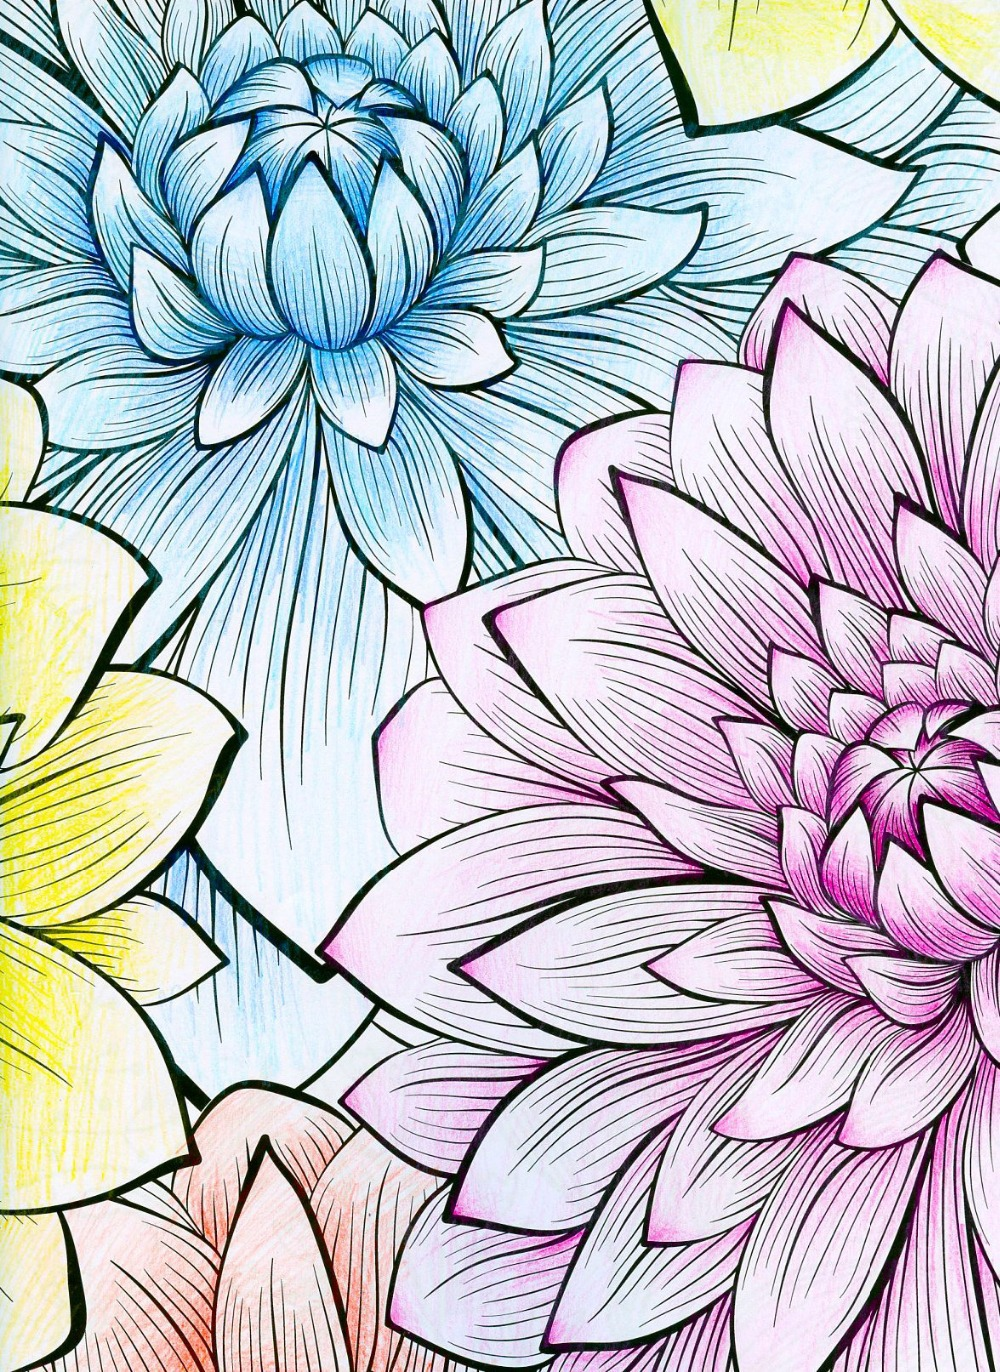 online shop natural wonders coloring book for adults children relieve stress picture painting drawing colouring art creative books aliexpress mobile - Drawing And Colouring